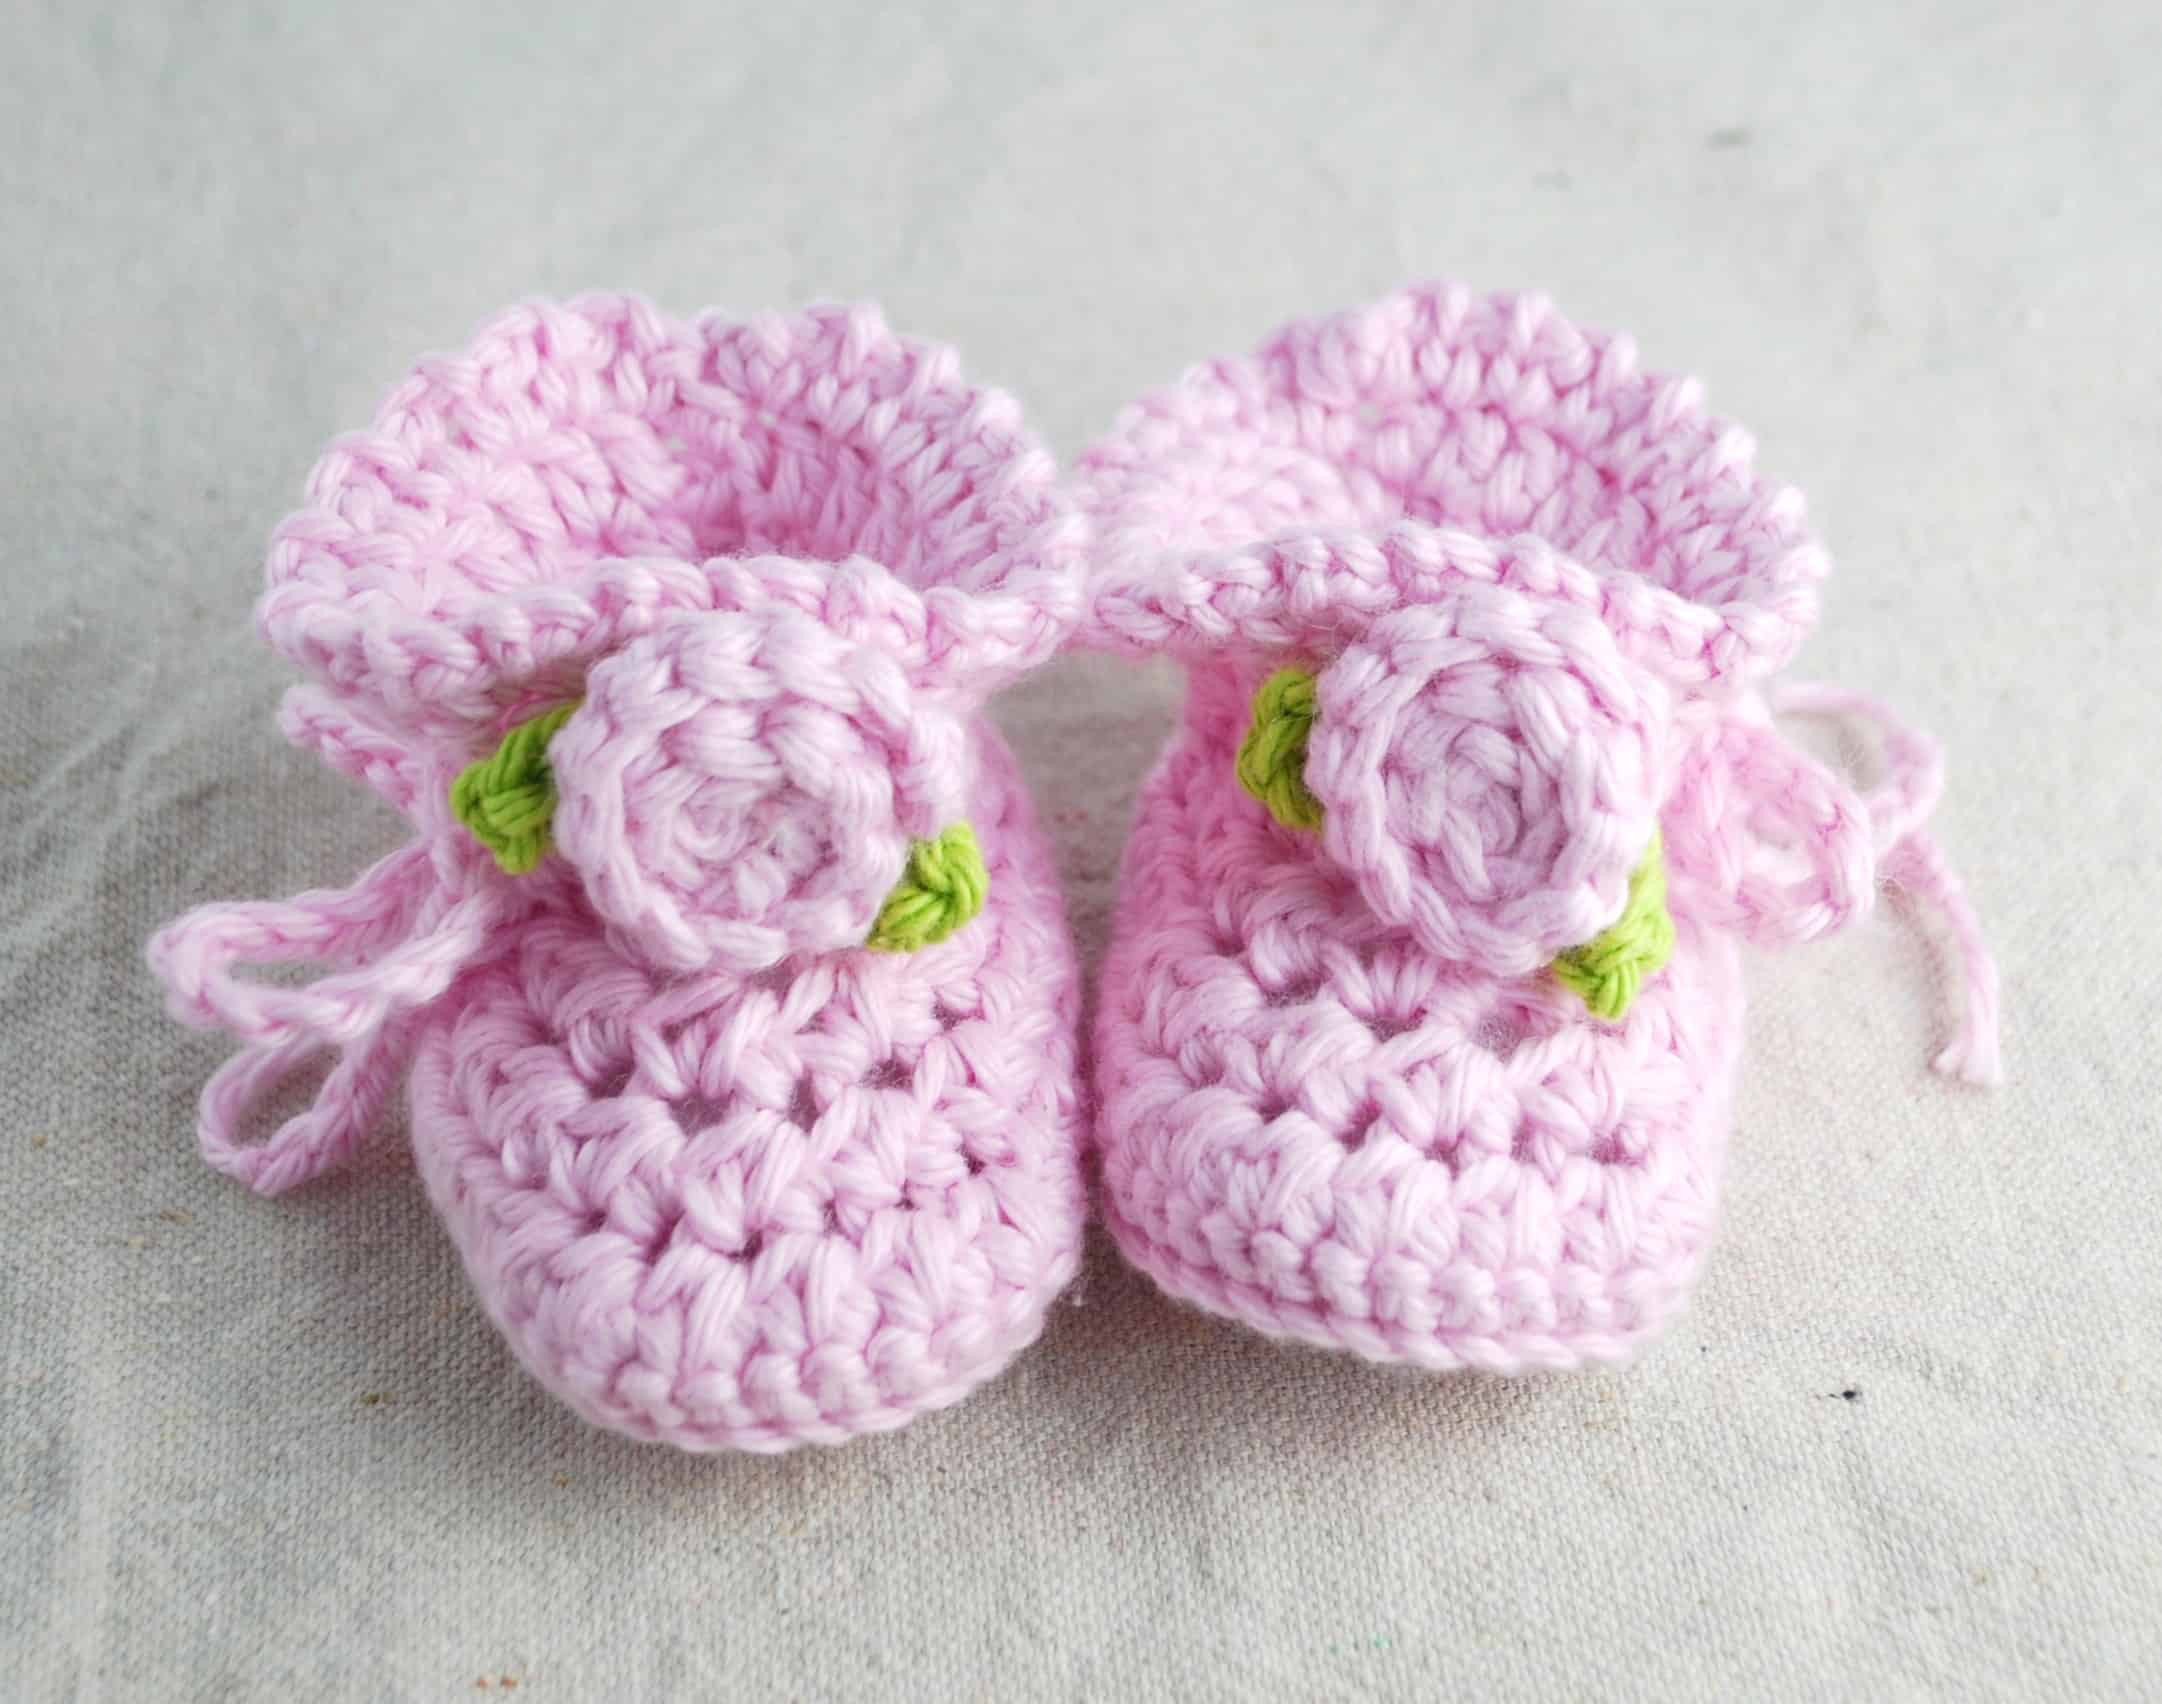 Crochet Baby Booties with Rosettes Creations by Kara